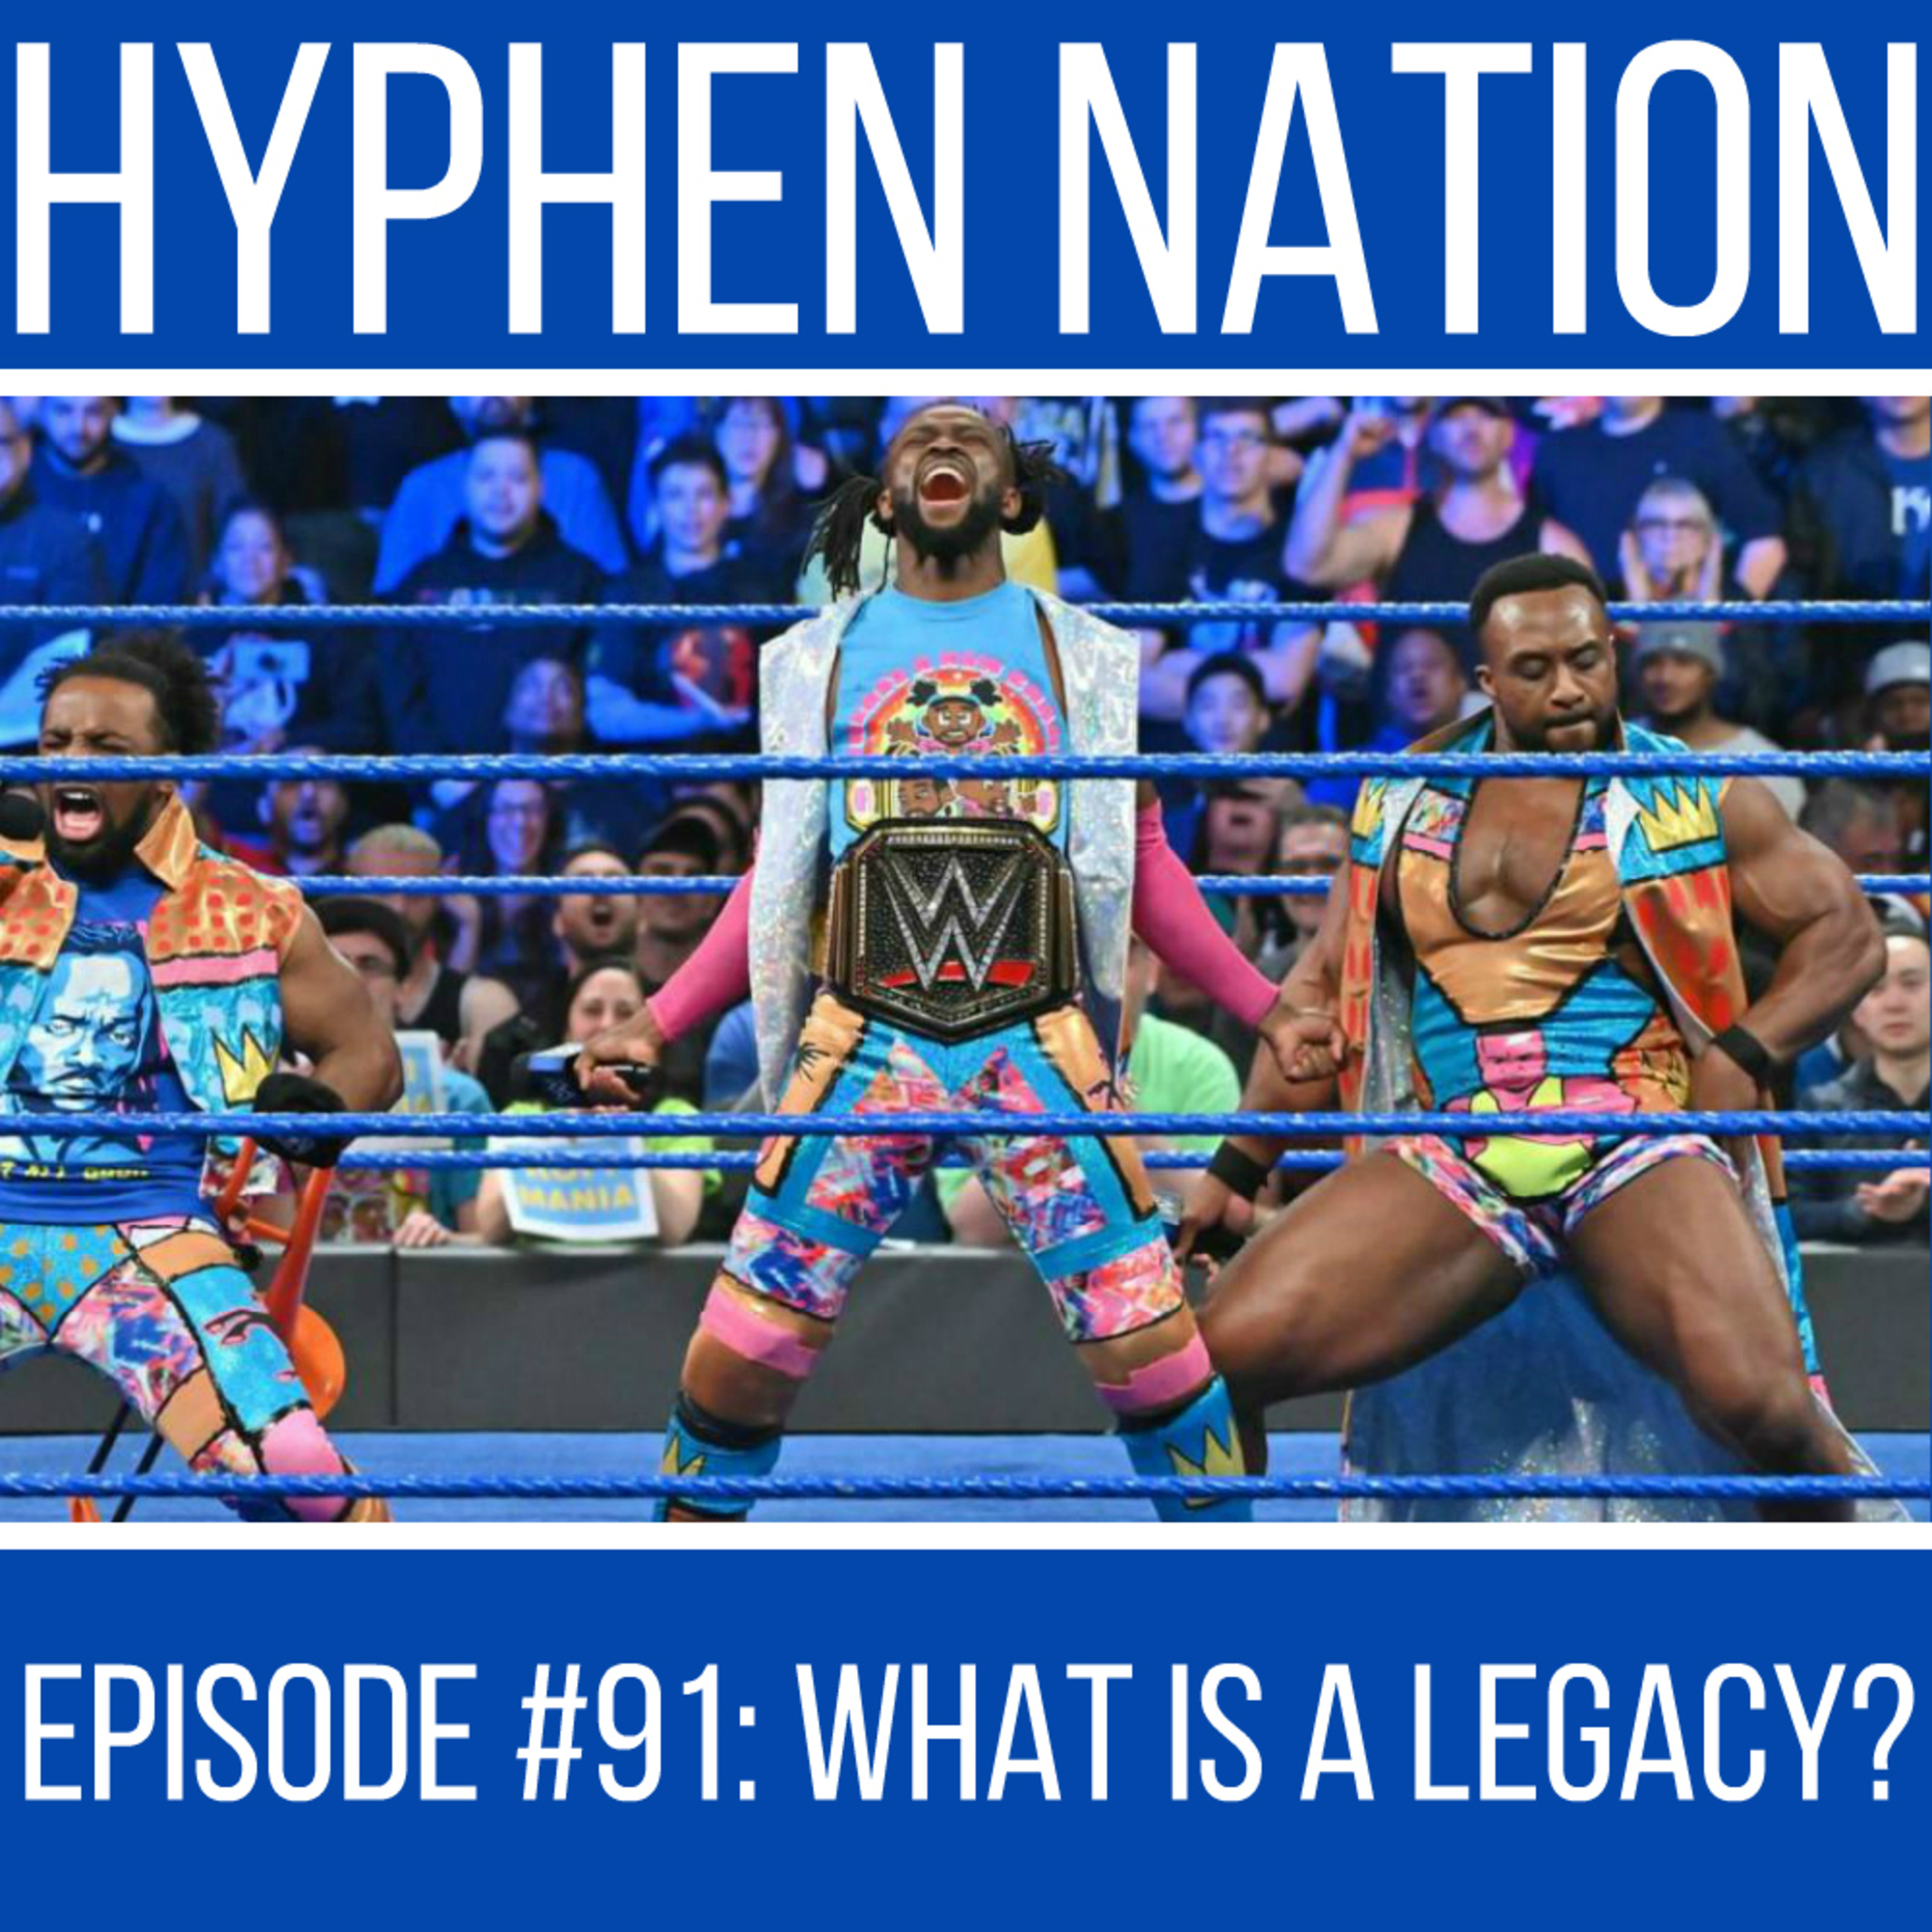 Episode #91: What Is A Legacy?